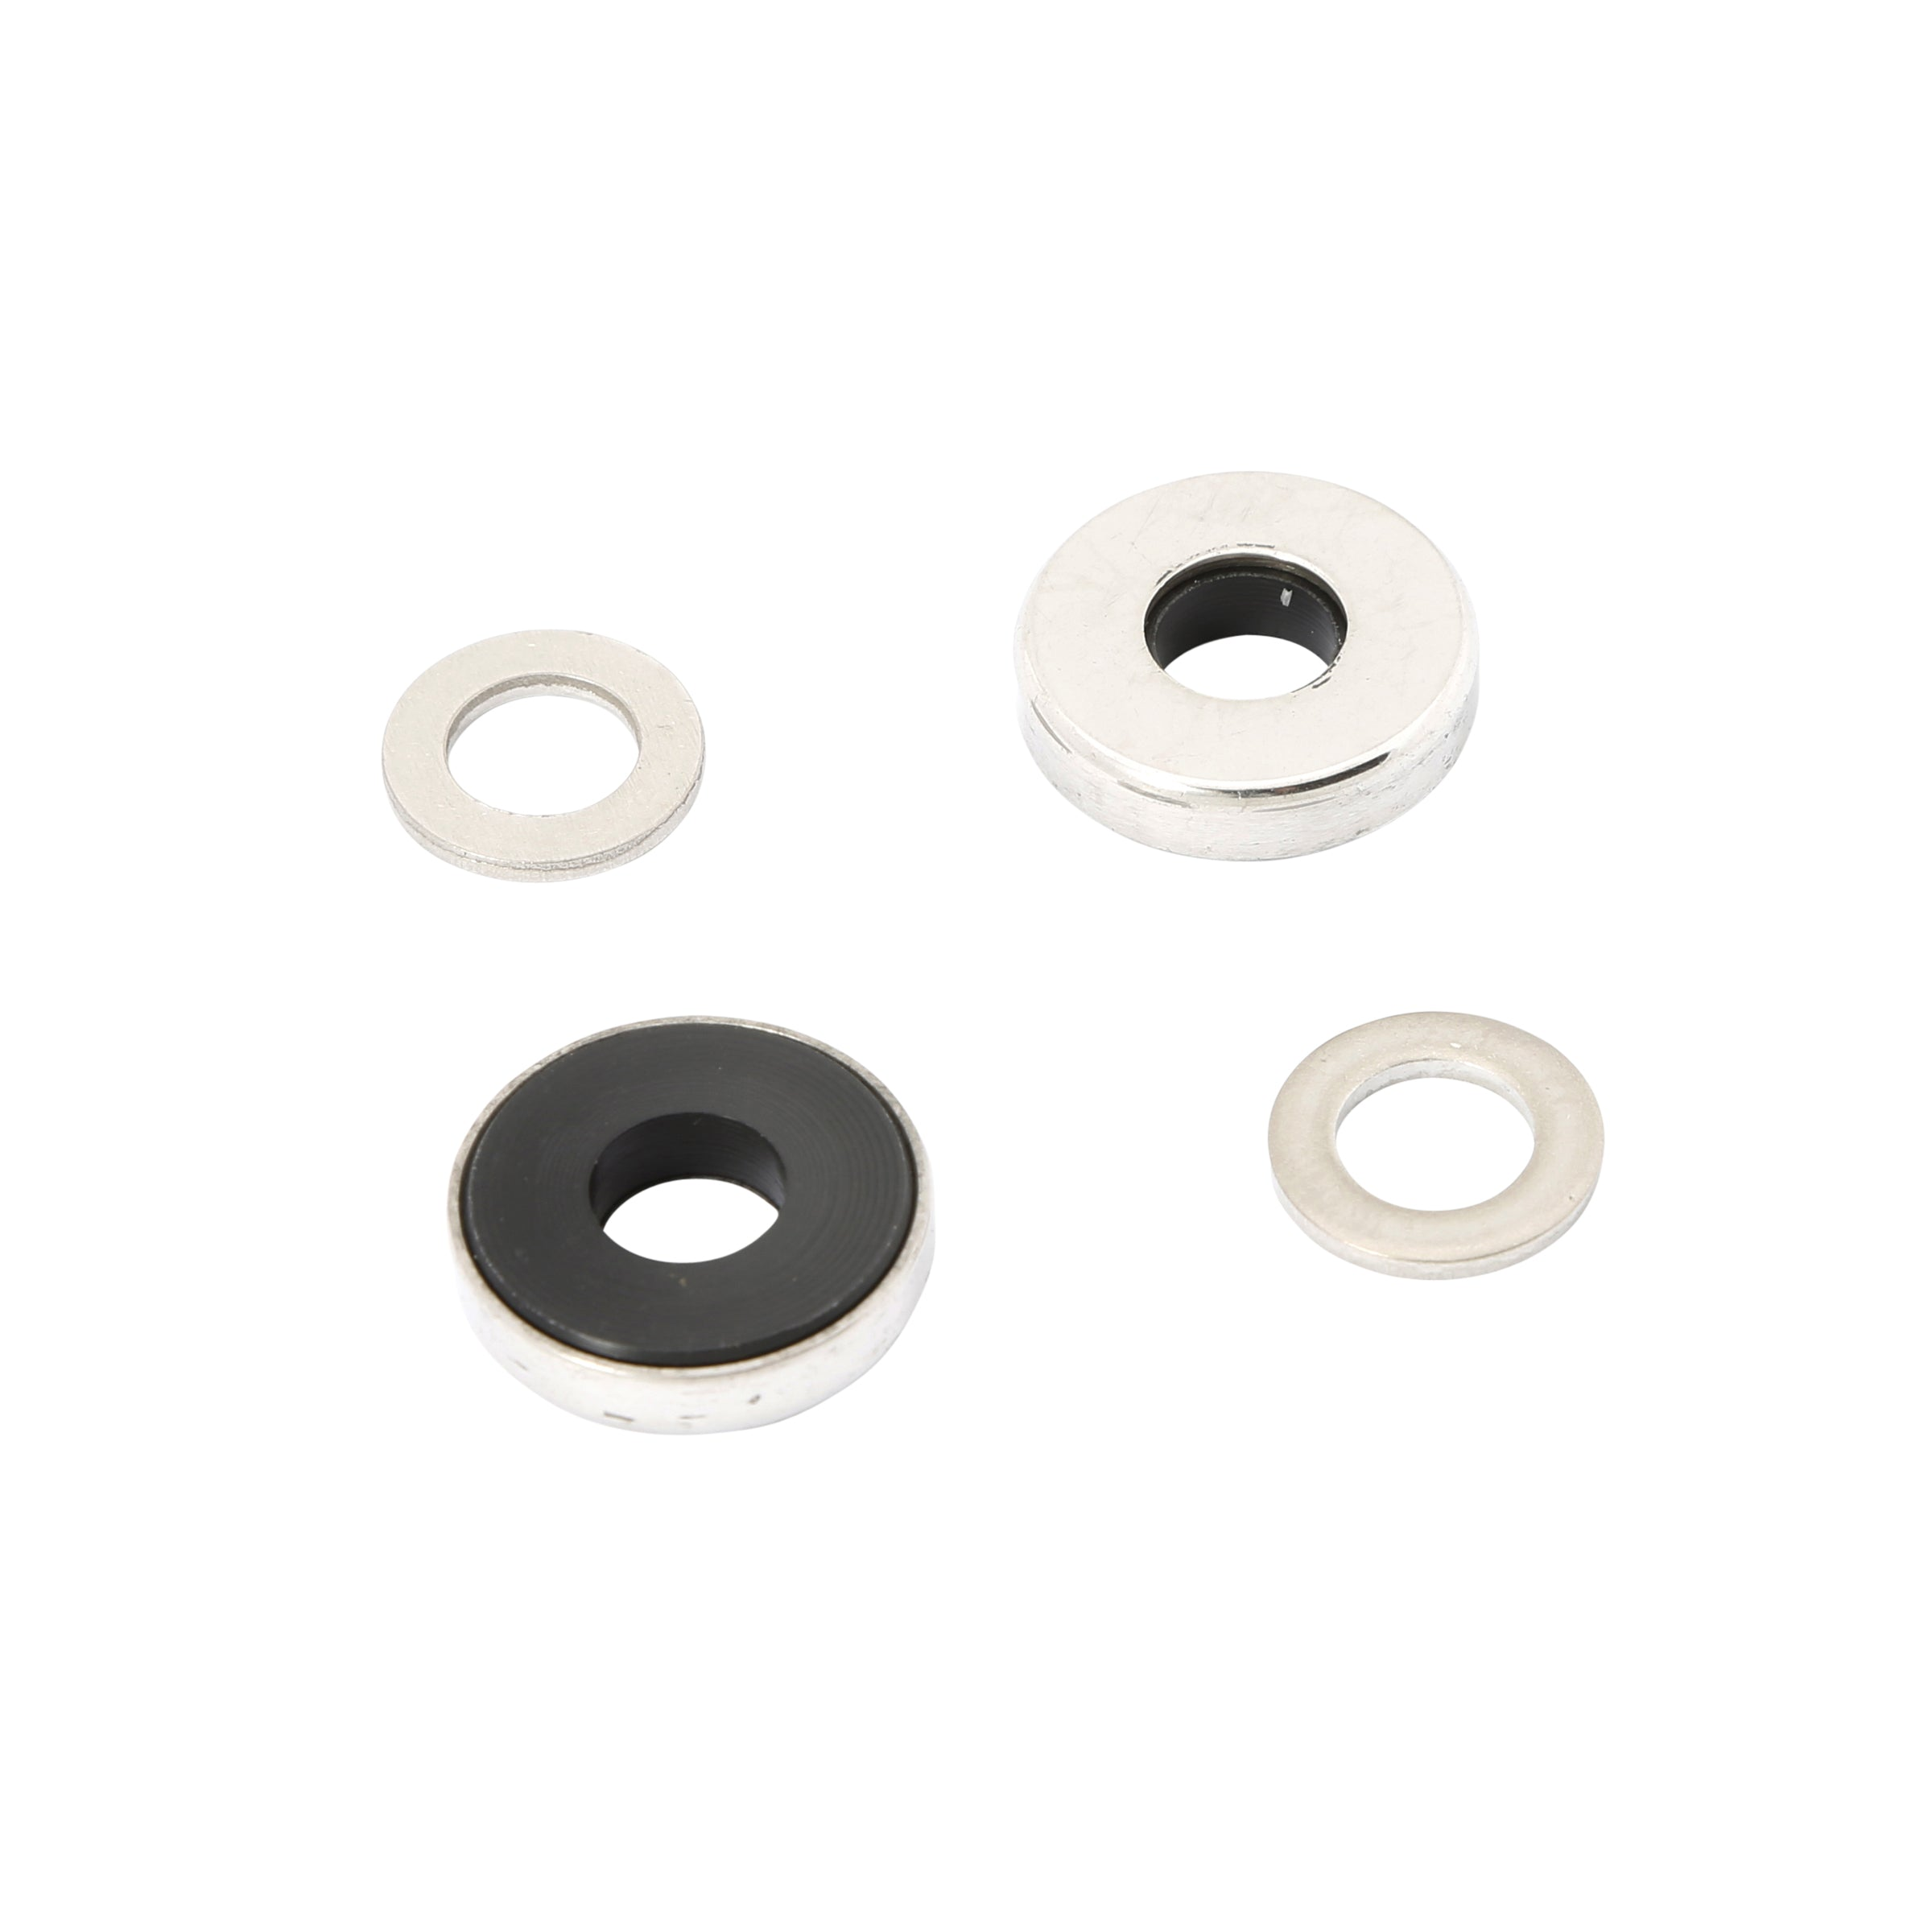 Slide Arm Washers